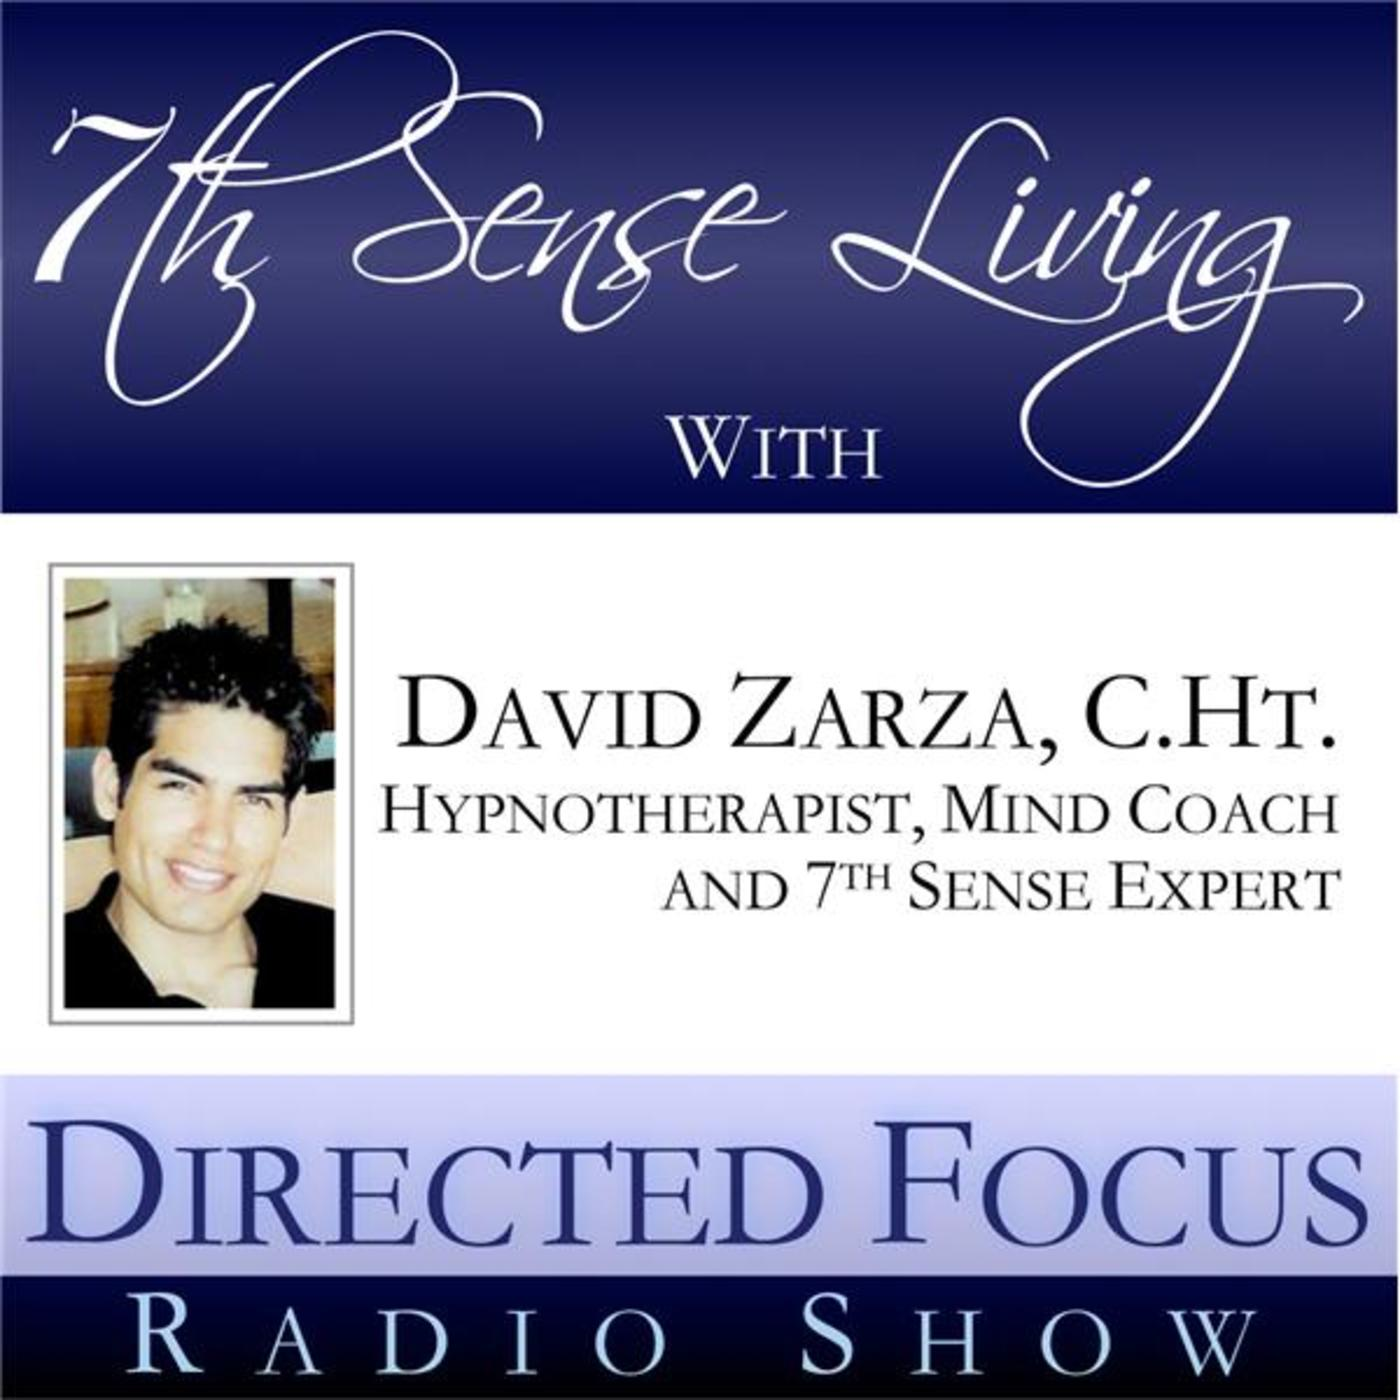 7th Sense Living with David Zarza